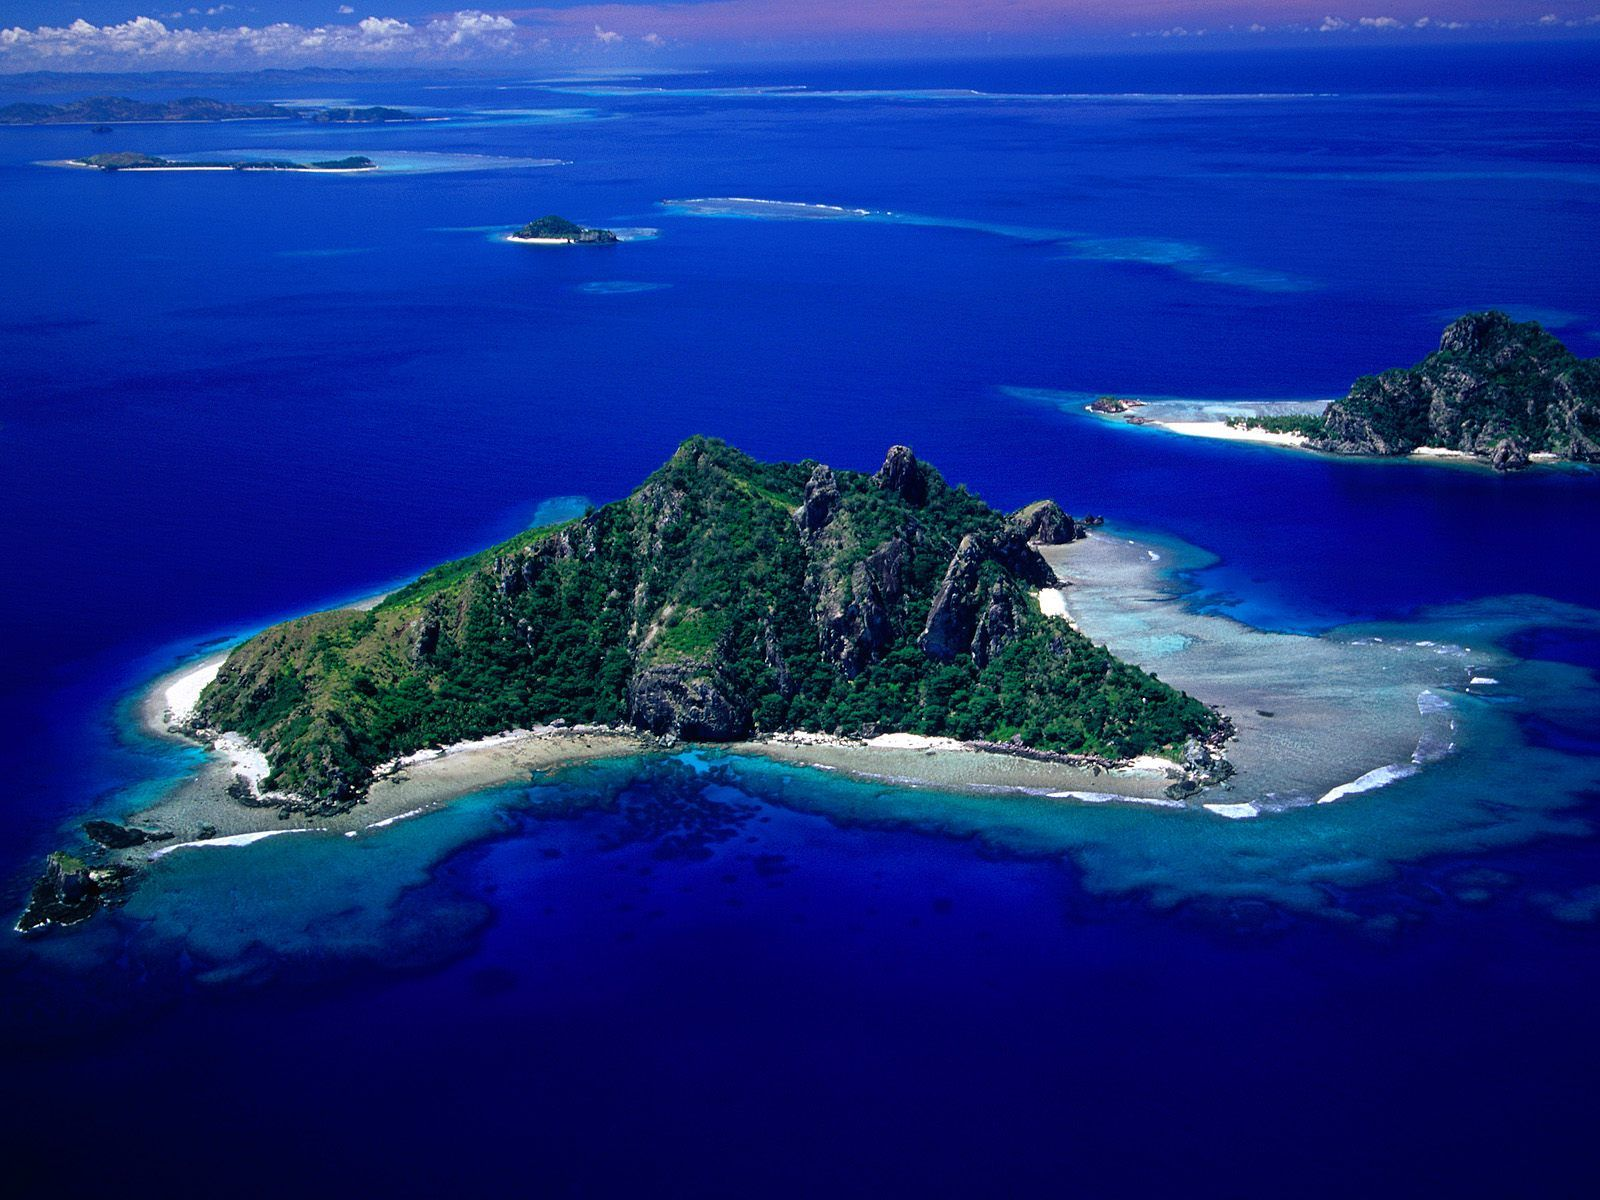 HD Wallpapers: Aerial View of Monu Island, Fiji